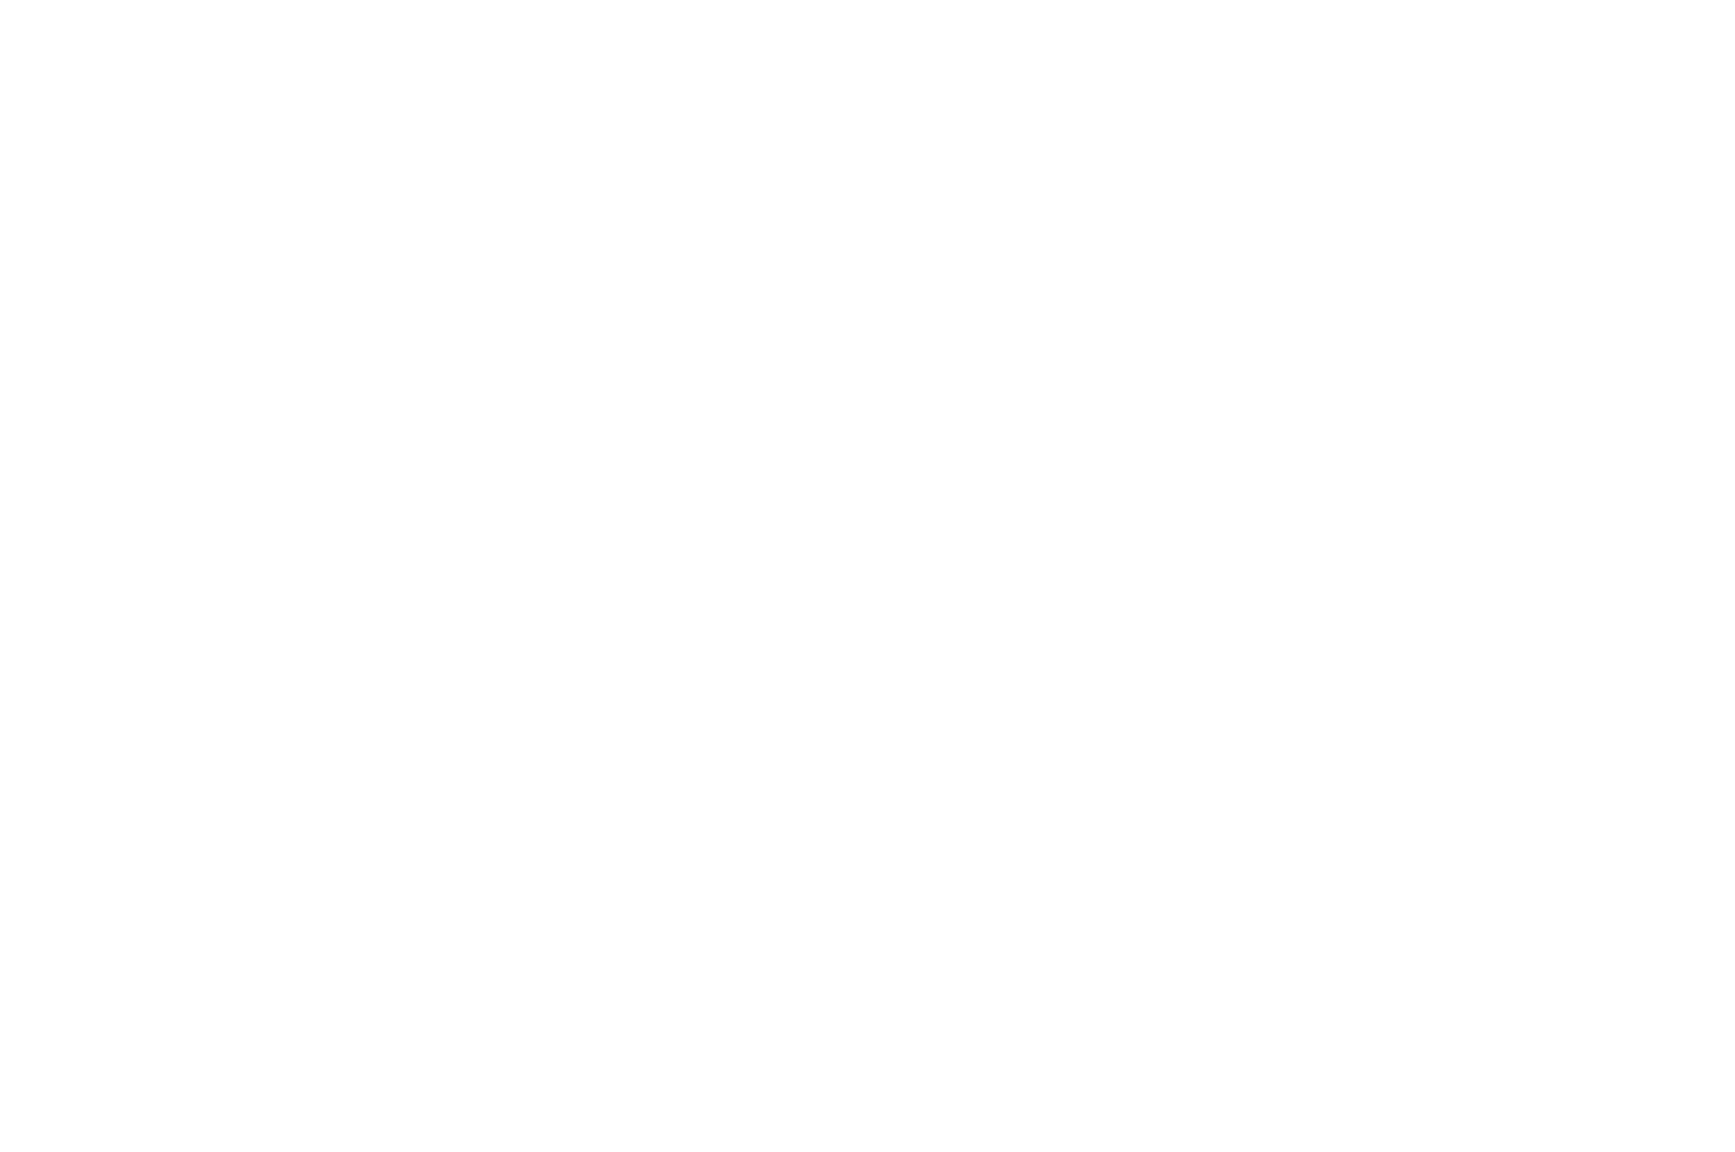 WINNER - Best Short Doc - GI Film Festival San Diego - 2017_white.png